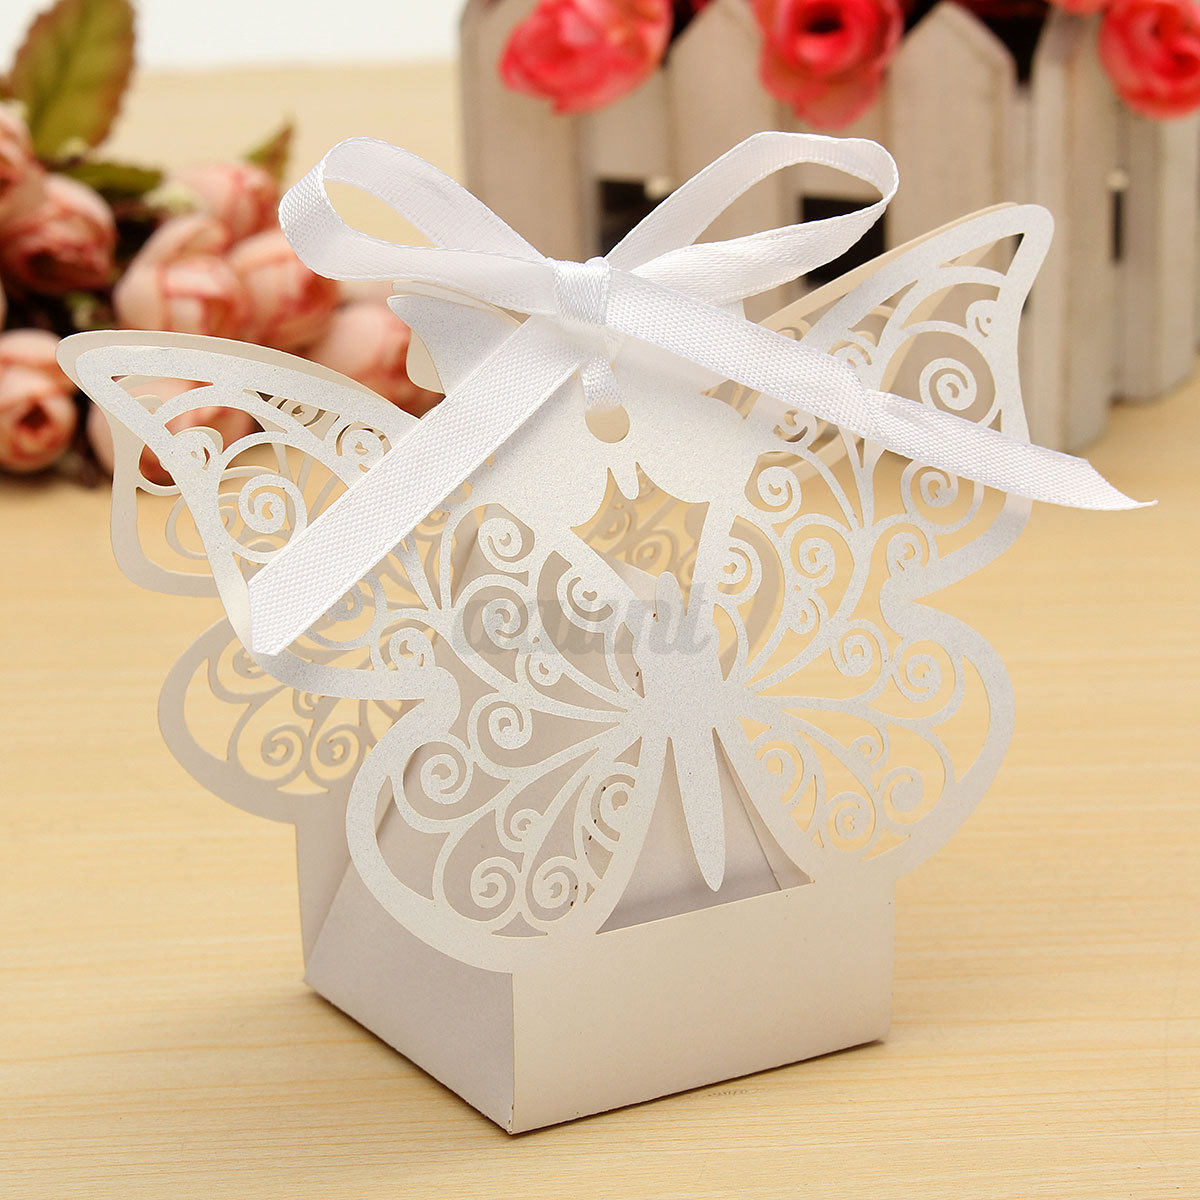 10/50Pcs Paper Butterfly Cut Candy Cake Boxes Wedding Party Gifts ...